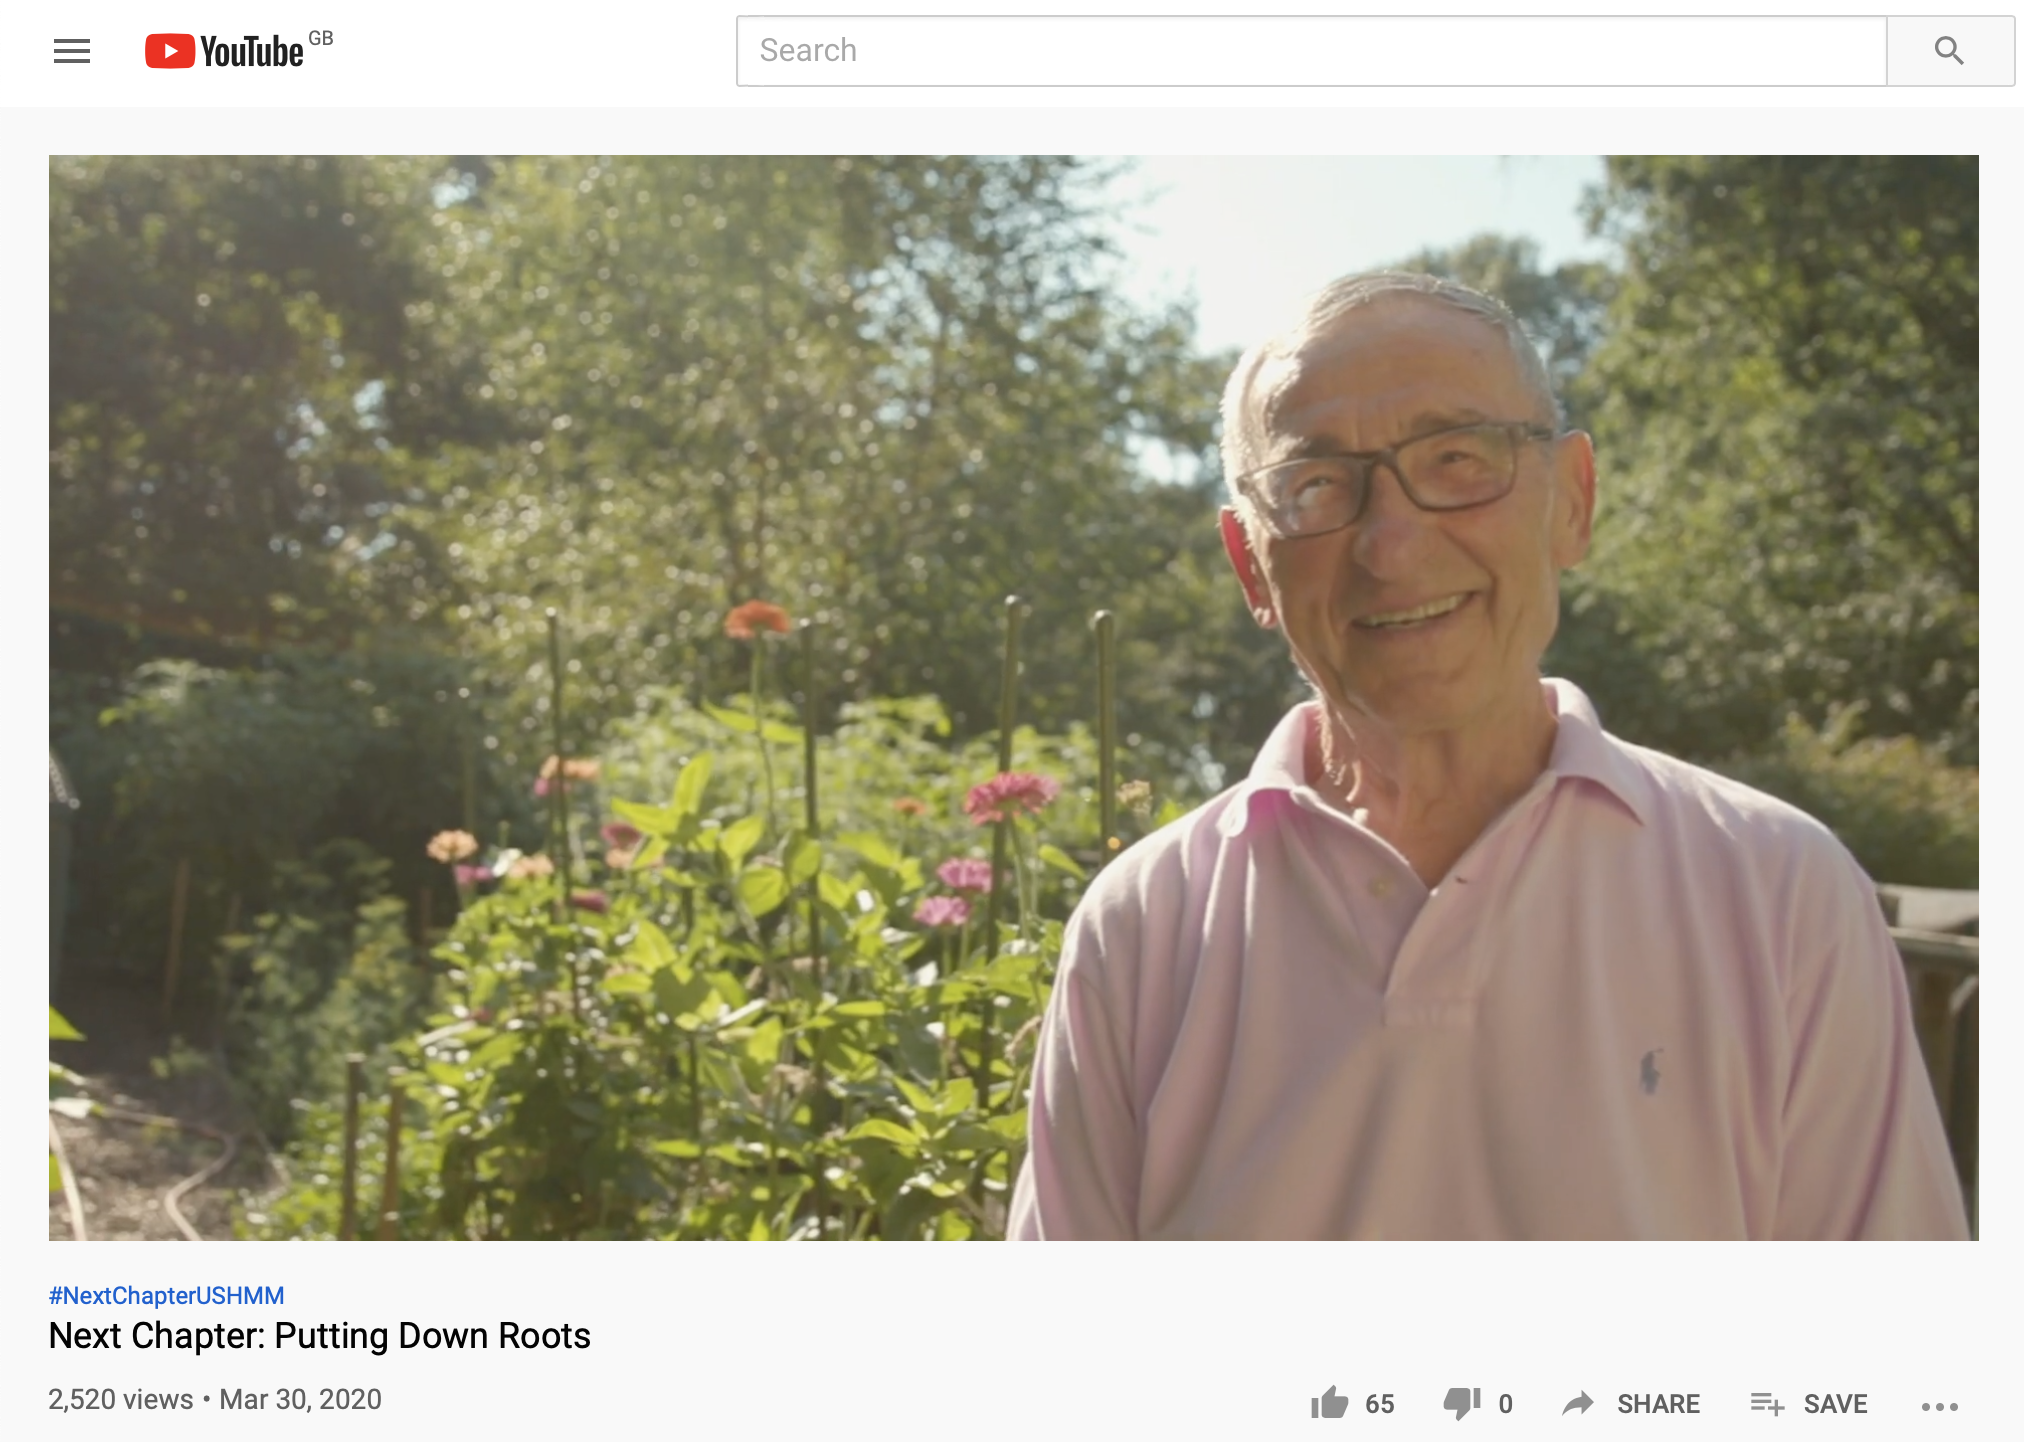 In his garden, Nat Shaffir beams in the final moments of 'Putting Down Roots'